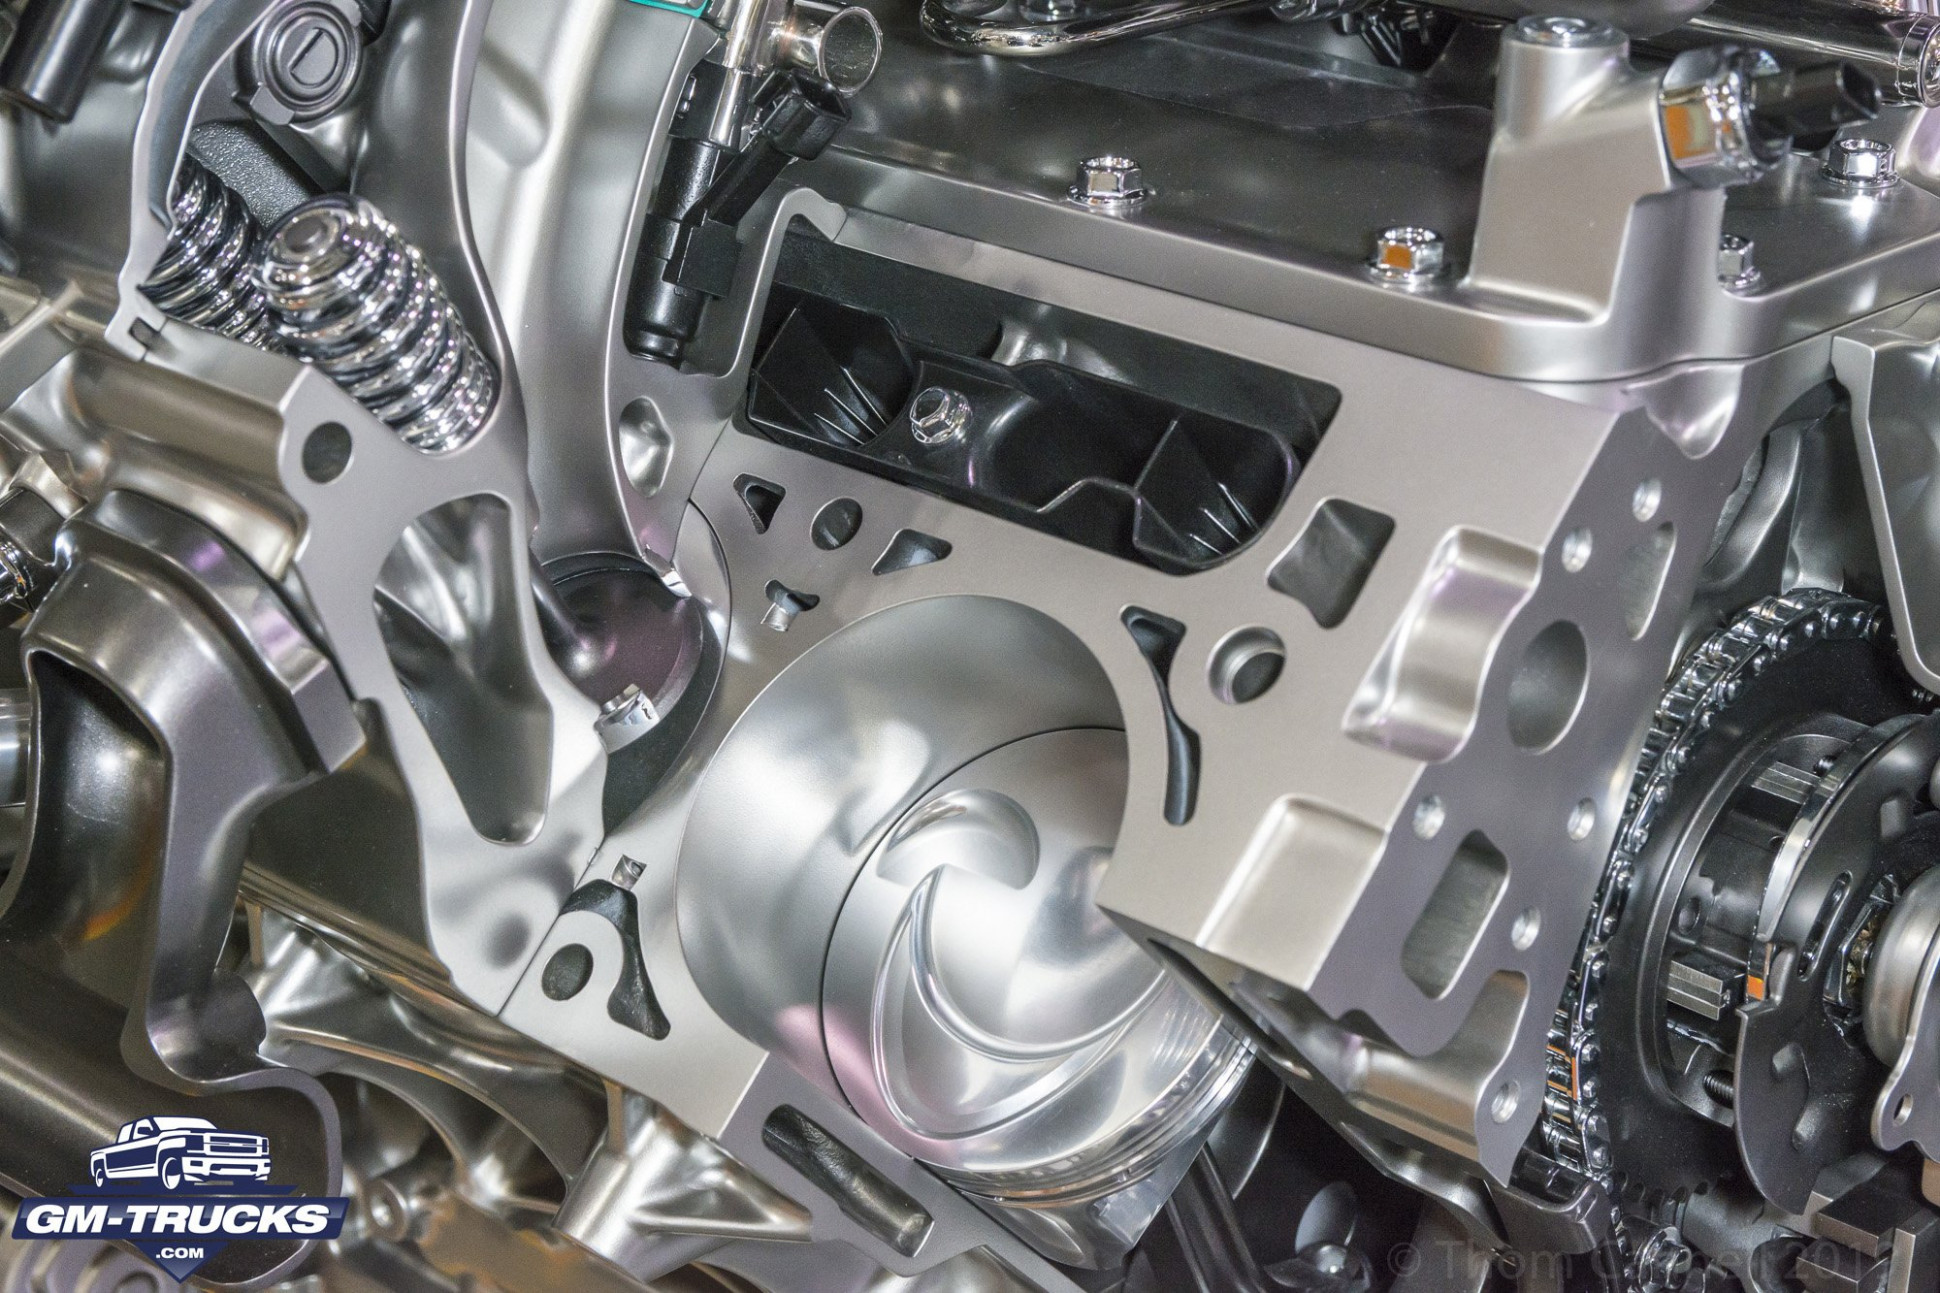 Configurations 2022 Gm 6.6 Gas